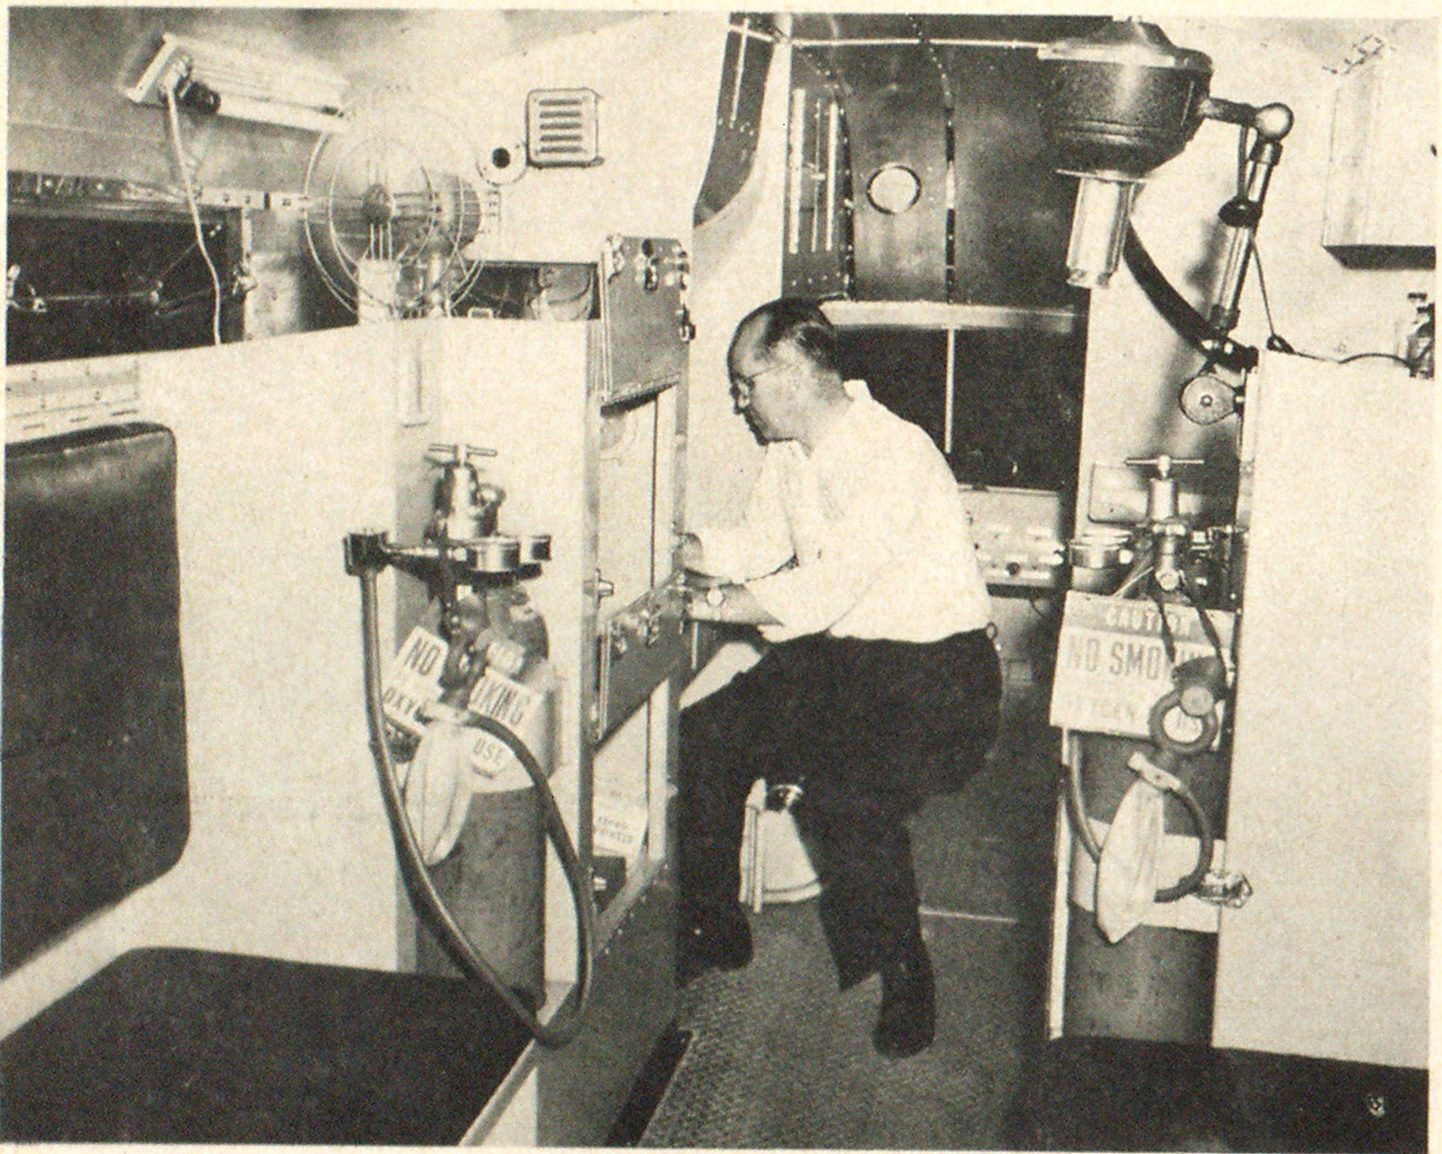 Interior of newly commissioned unit of the Rockville Centre Fire Department showing officer (Captain Boggs) on folding seat at control desk opposite dispensary counter and sink. Truck has running water, fans, drop seat and facilities for treating a number of patients at same time. Flood lights sink into compartments over control desk. Seats for driver and officer are in cab behind.